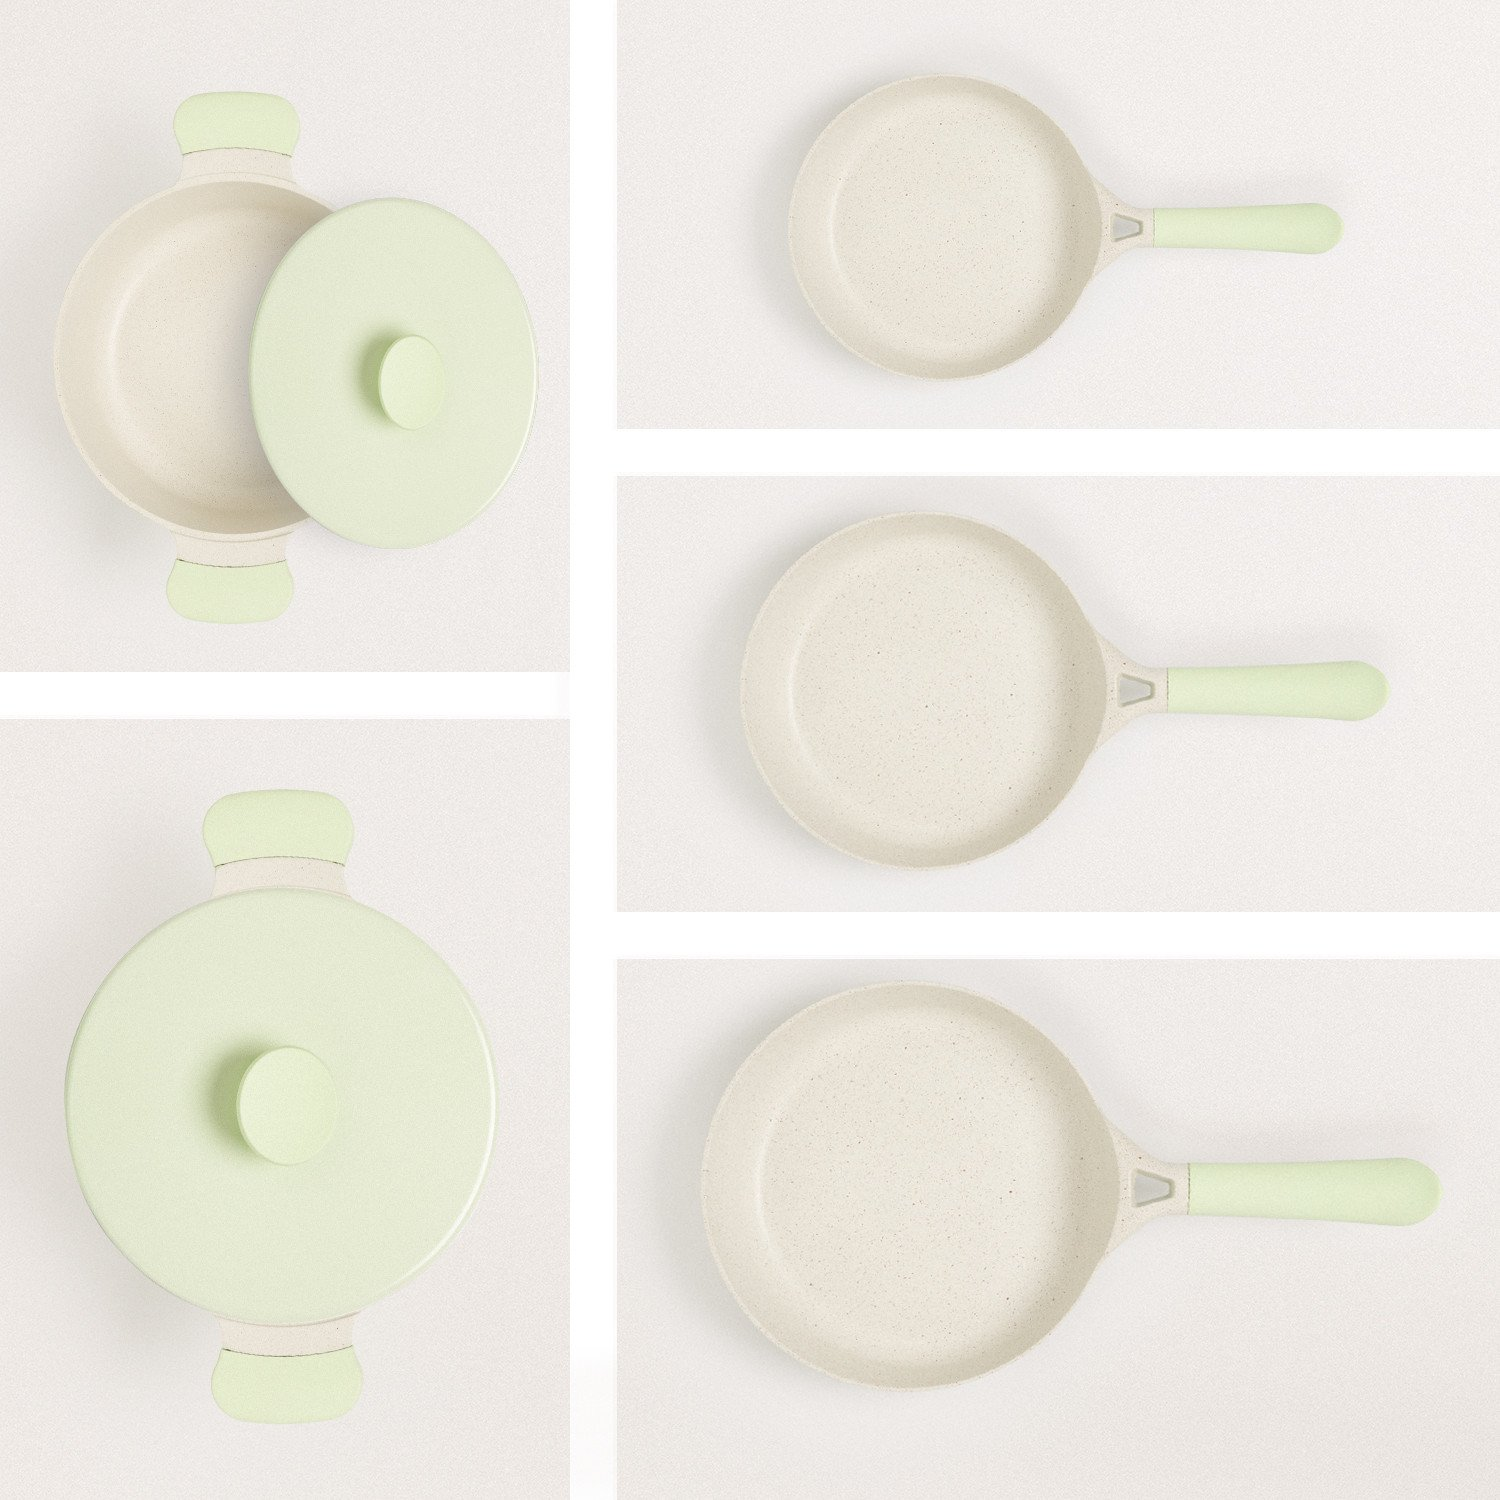 HOUSEHOLD PACK of 2 POTS AND 3 PANS, imagen de galería 1